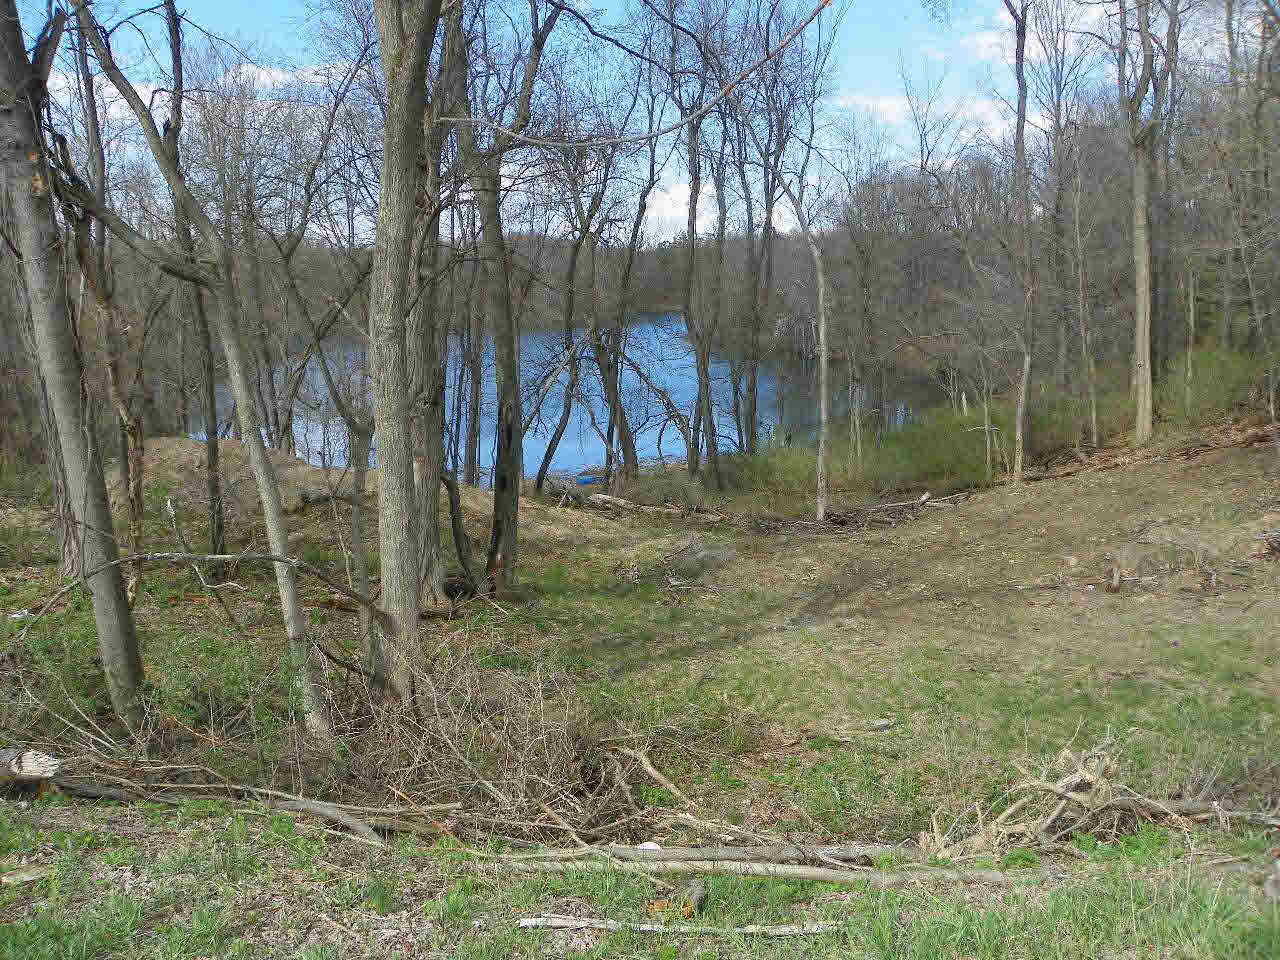 TURKEY HILL RD. 2.18 Red Hook, NY 12571 - MLS #: 327432